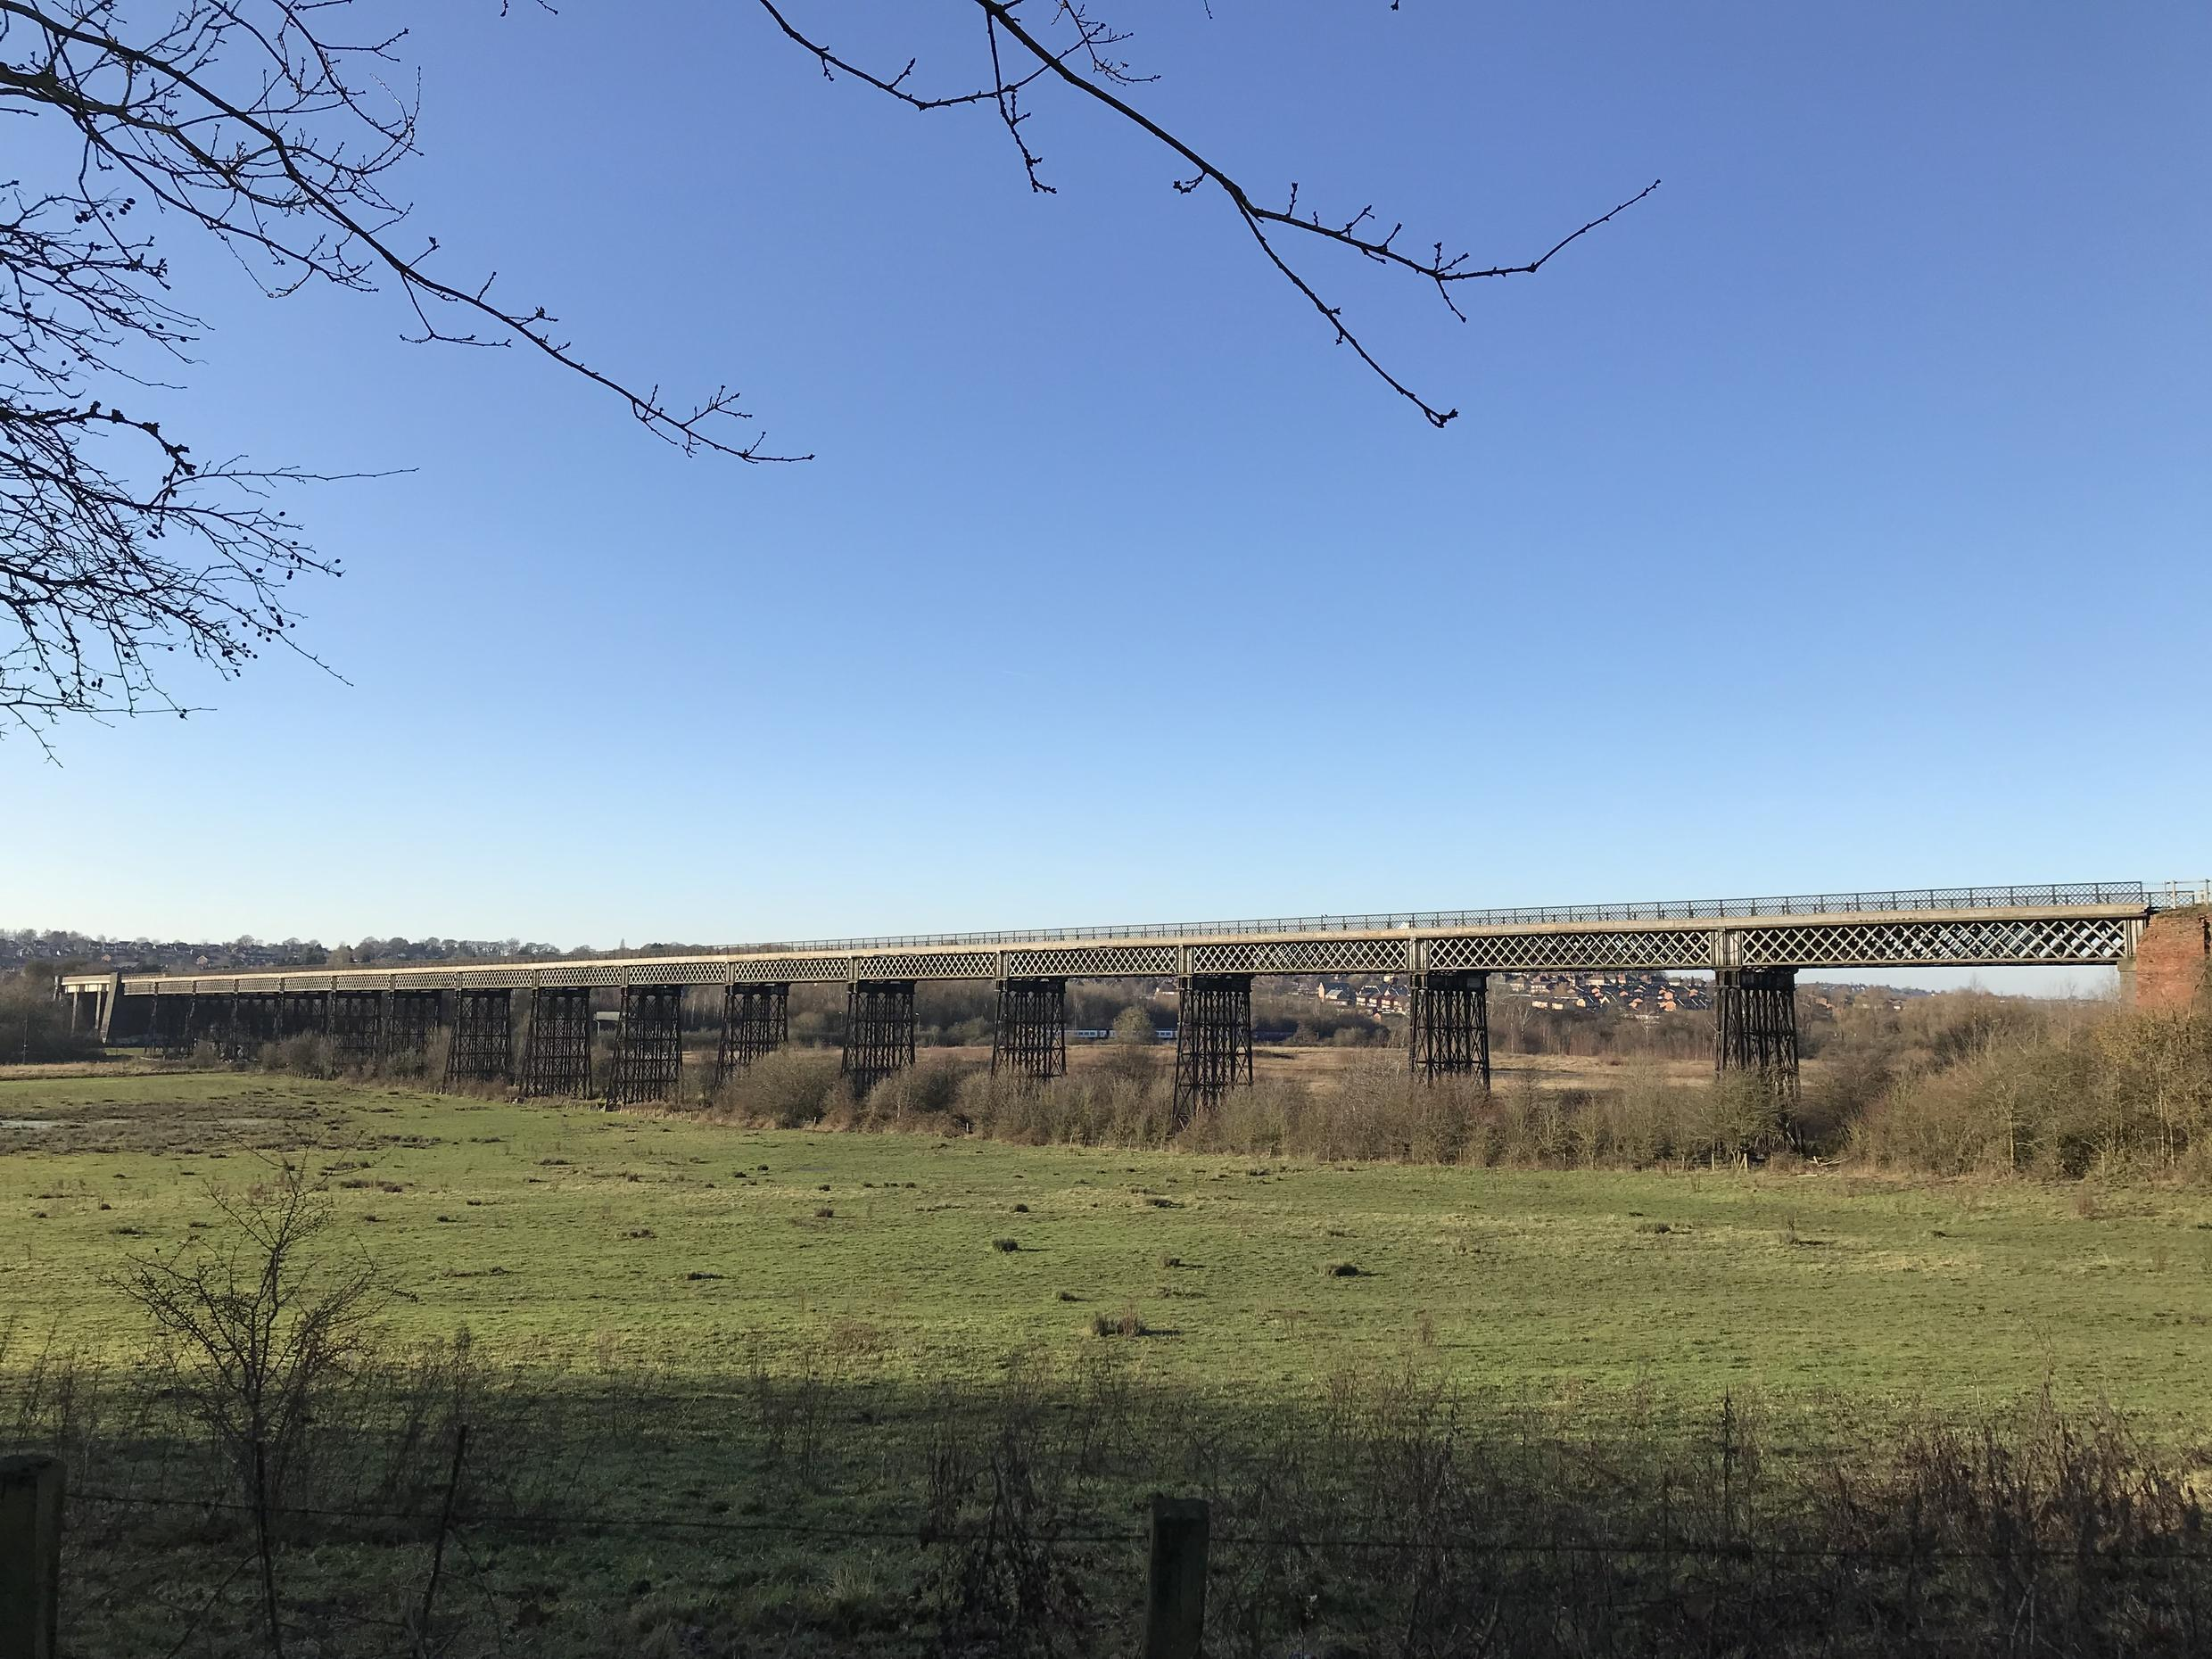 The Bennerley Viaduct over the River Erewash opened in 1878, and remains a symbol of the Industrial Revolution, long after international companies supplanted locally owned heavy industry in the area